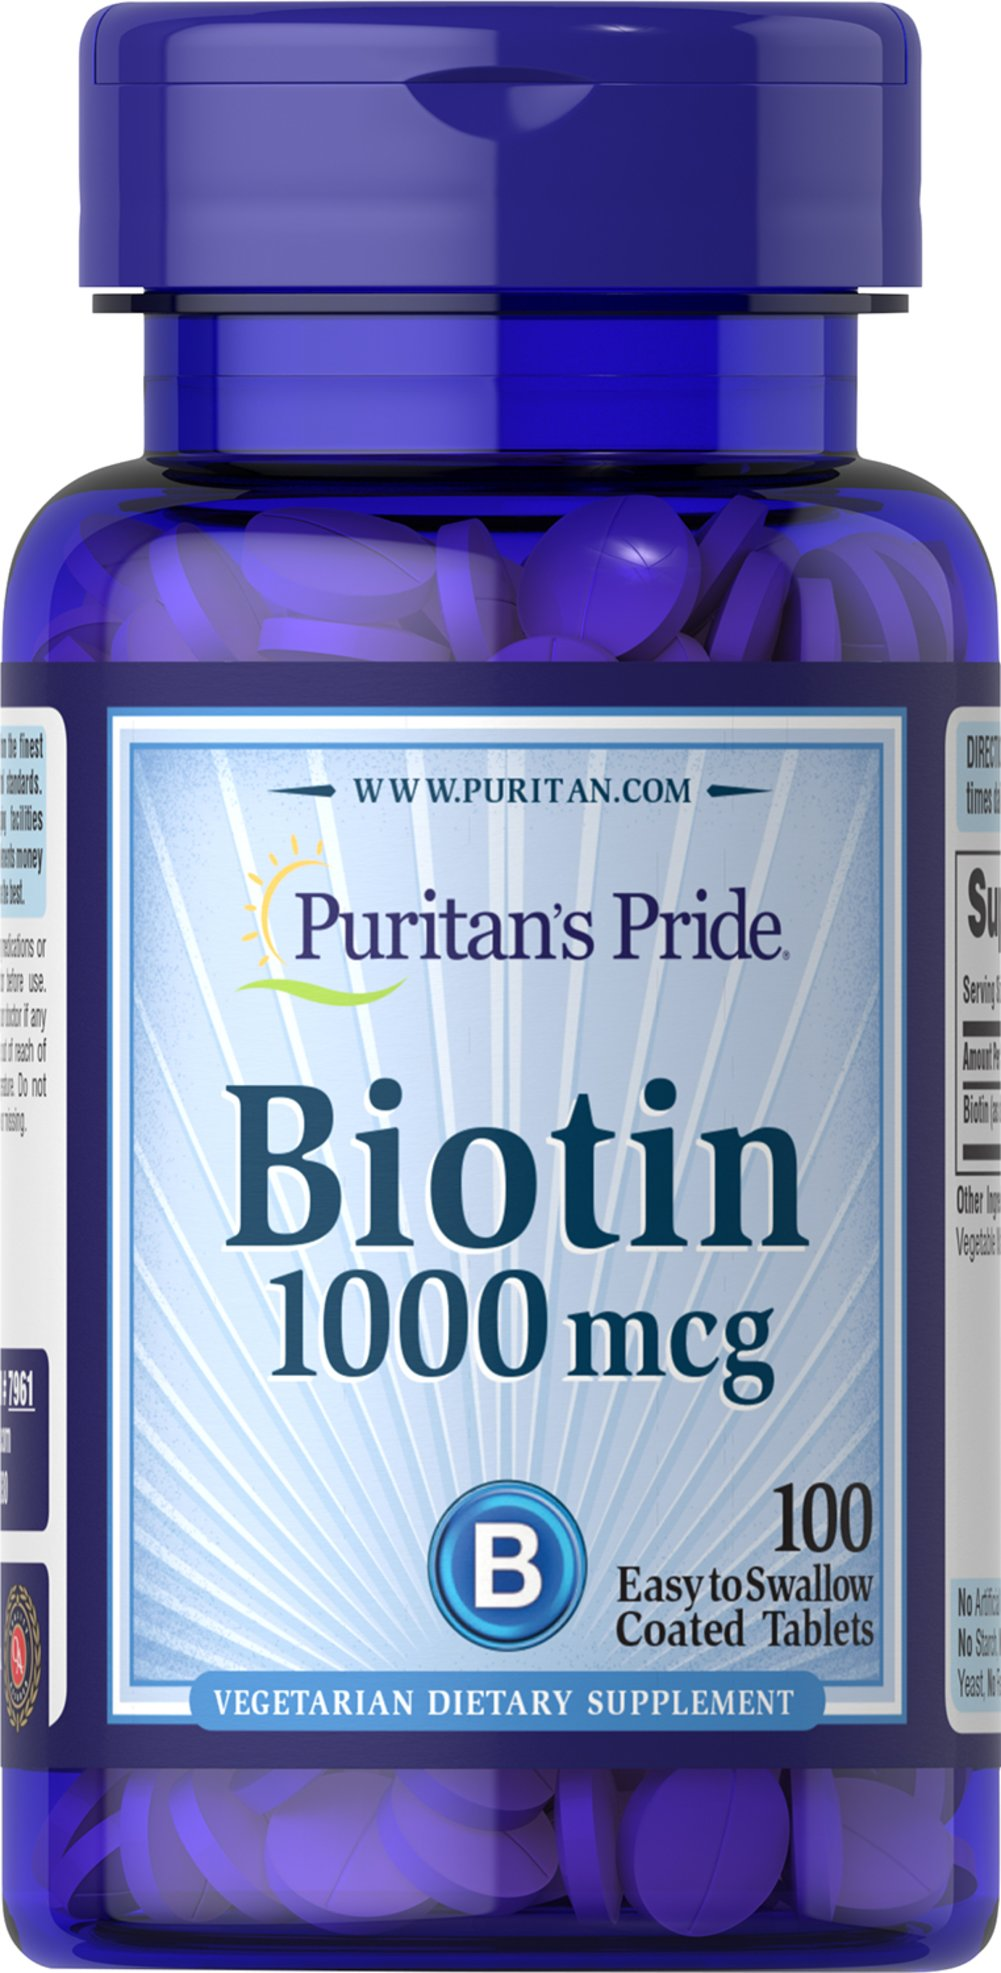 Biotin 1000 mcg <p>Supports Carbohydrate, Protein and Fat Metabolism**</p><p>Found in foods such as oatmeal and soy, Biotin, a water soluble B vitamin, assists in energy metabolism in cells.** Biotin is essential for the intermediate metabolism of carbohydrates, proteins and fats.** In addition, Biotin helps to support healthy skin and hair.**</p> 100 Tablets 1000 mcg $7.99